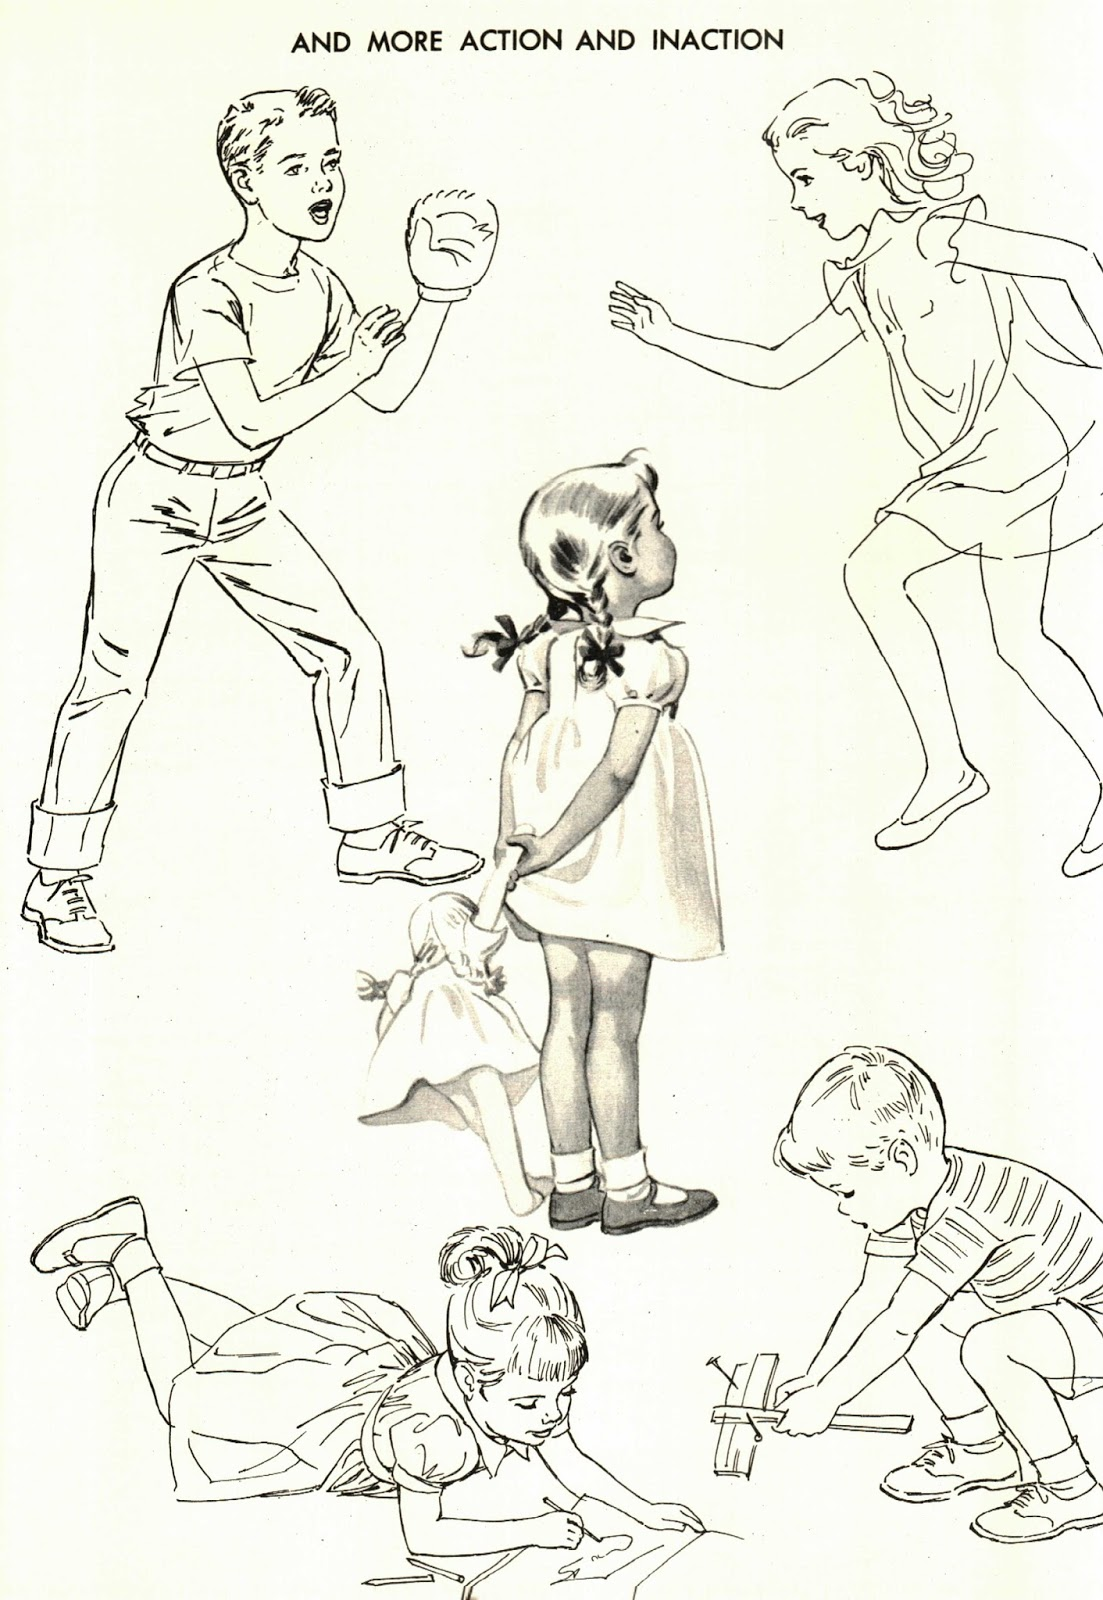 here are some scanned pages from how to draw and paint children by viola french published by walter t foster the book is too large for my scanner so i used - Pictures To Paint For Children